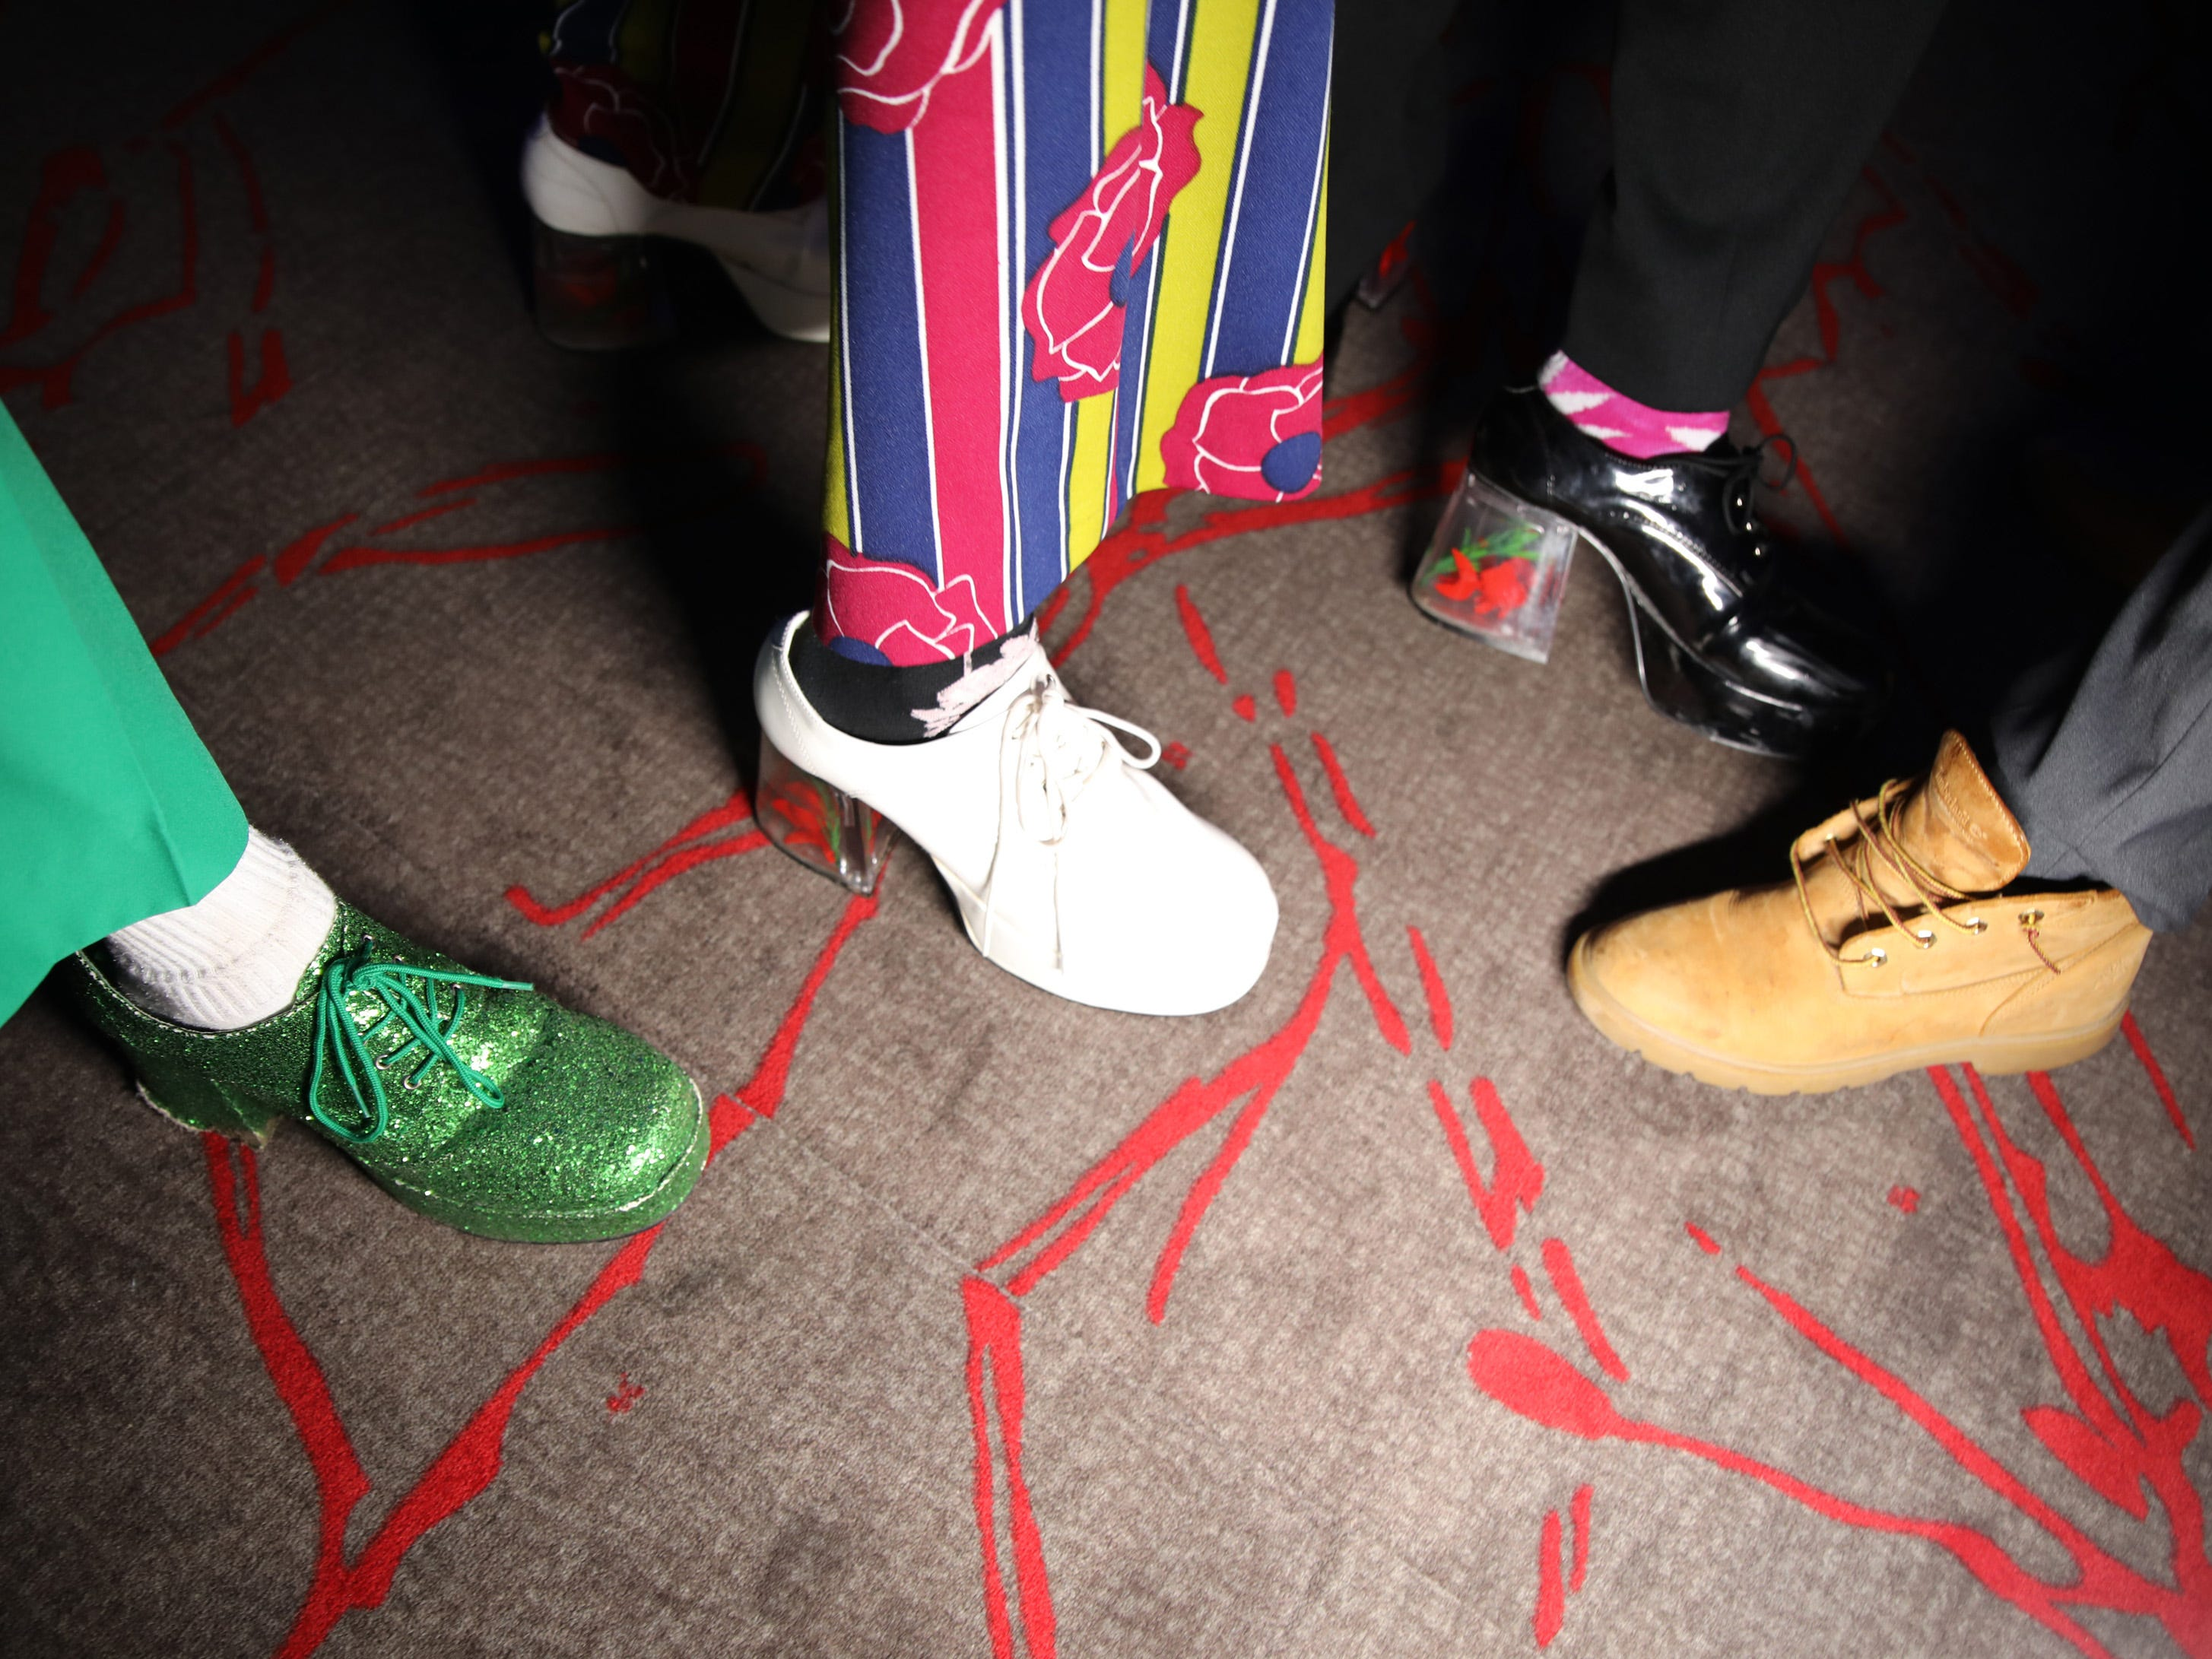 The stylish footware of Jaedon Warren, Jack Portz, Ben Cirksena, and Joey Risola at the Waukee High School Prom at the Ron Pearson Center in West Des Moines on Saturday, April 6, 2019.